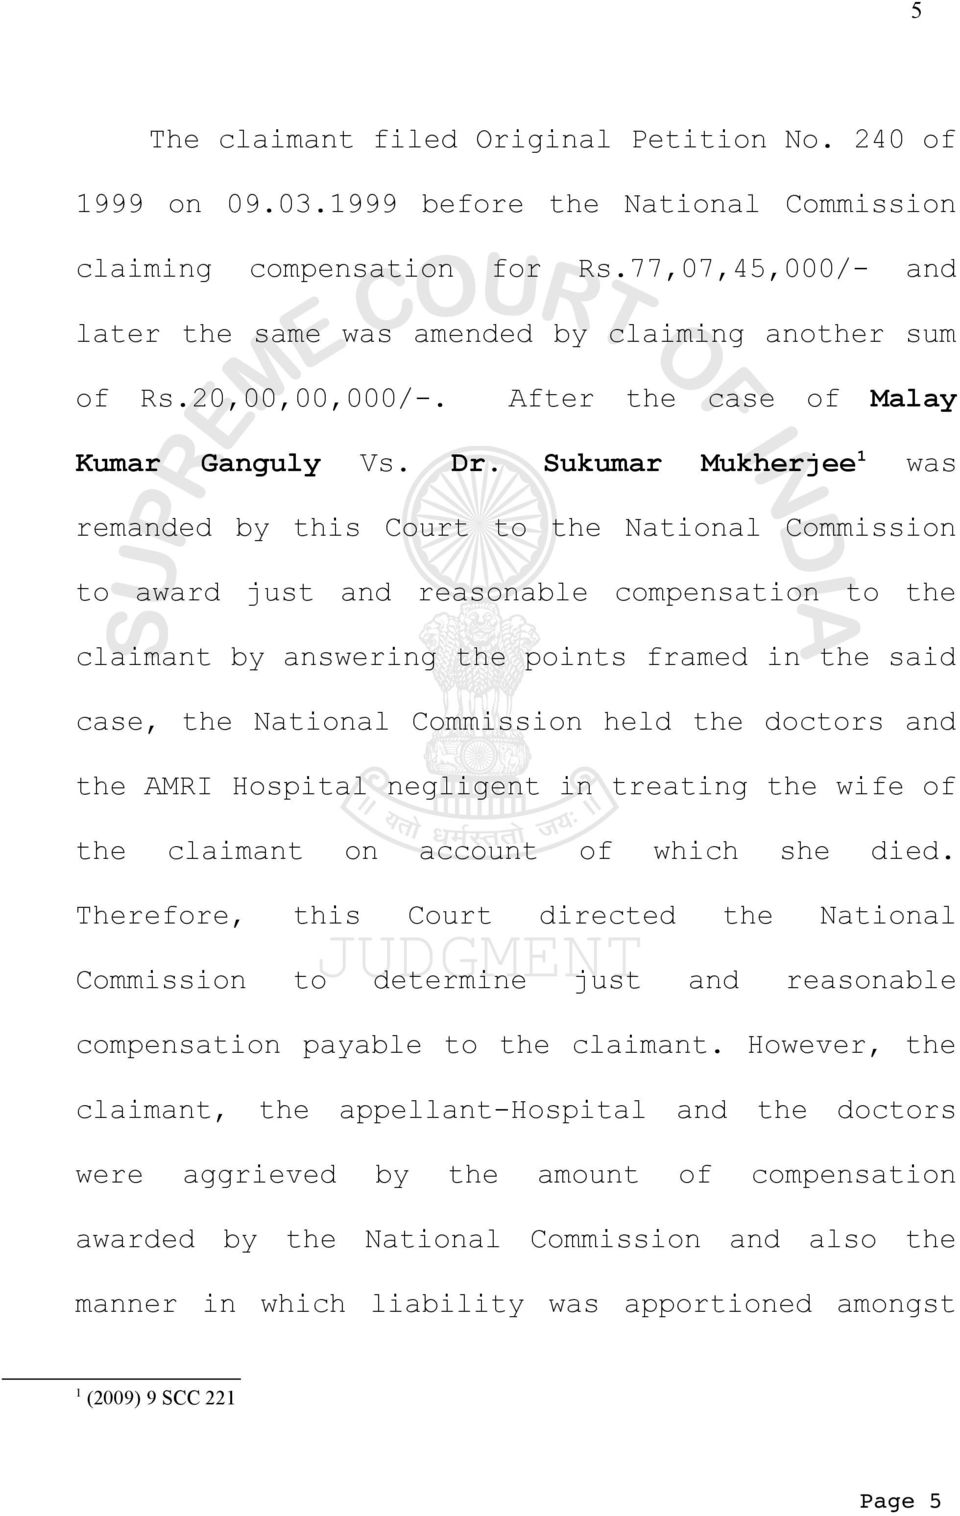 Sukumar Mukherjee 1 was remanded by this Court to the National Commission to award just and reasonable compensation to the claimant by answering the points framed in the said case, the National